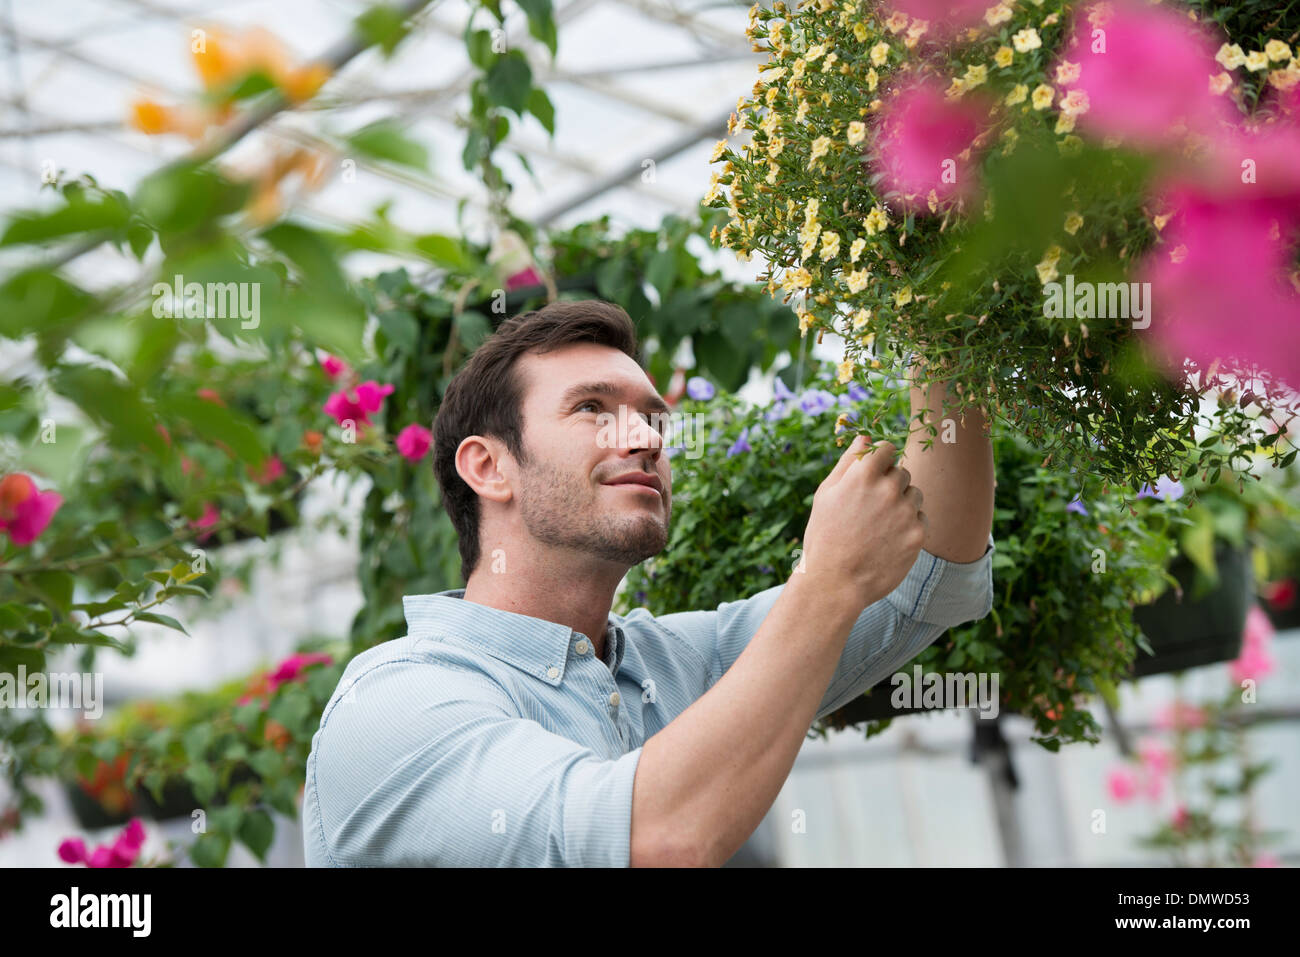 An organic flower plant nursery. A man working tending  plants. - Stock Image